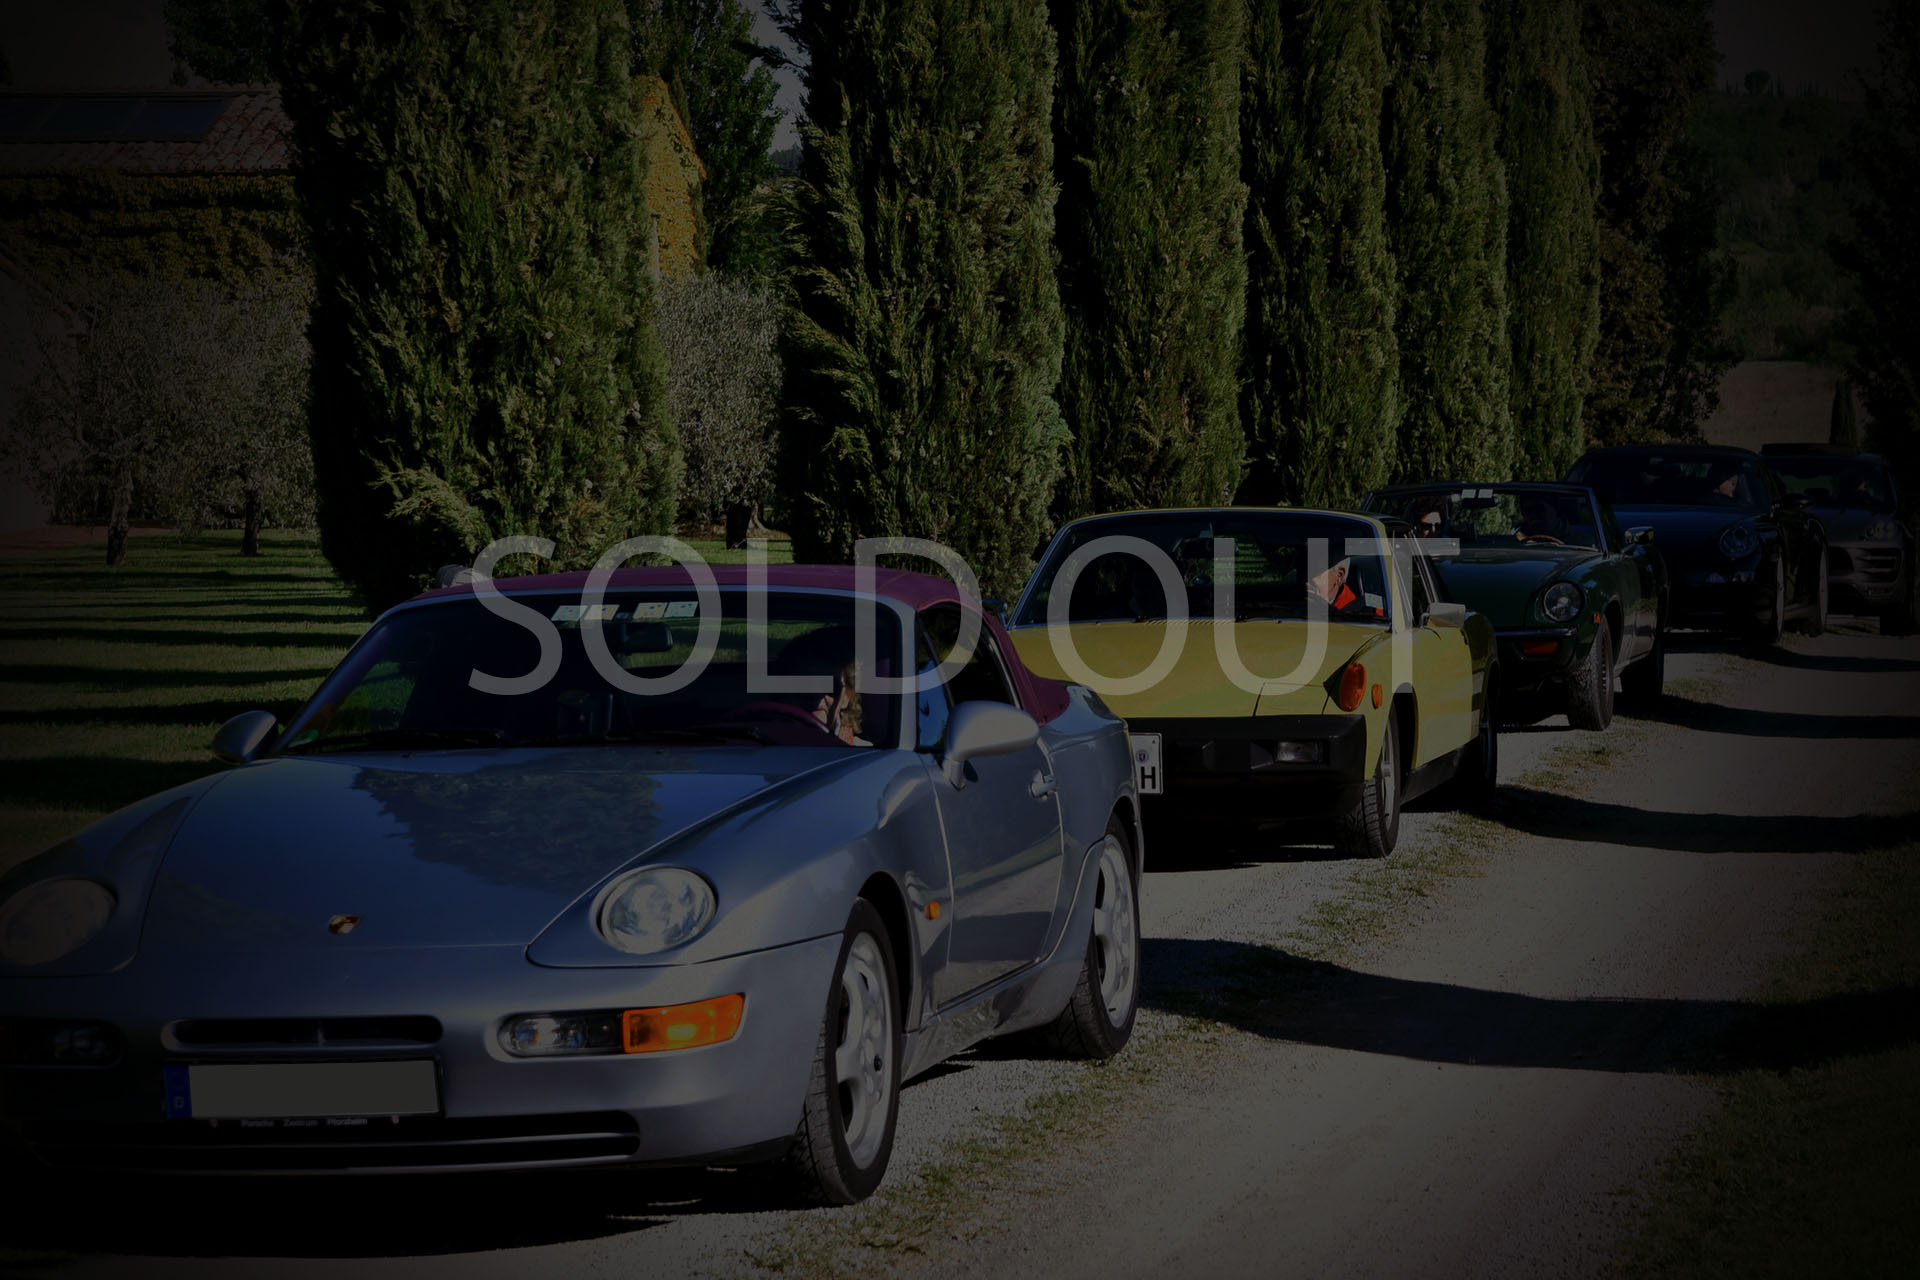 T1-I - Tuscany-Umbria_SOLD OUT Ruote Leggendarie